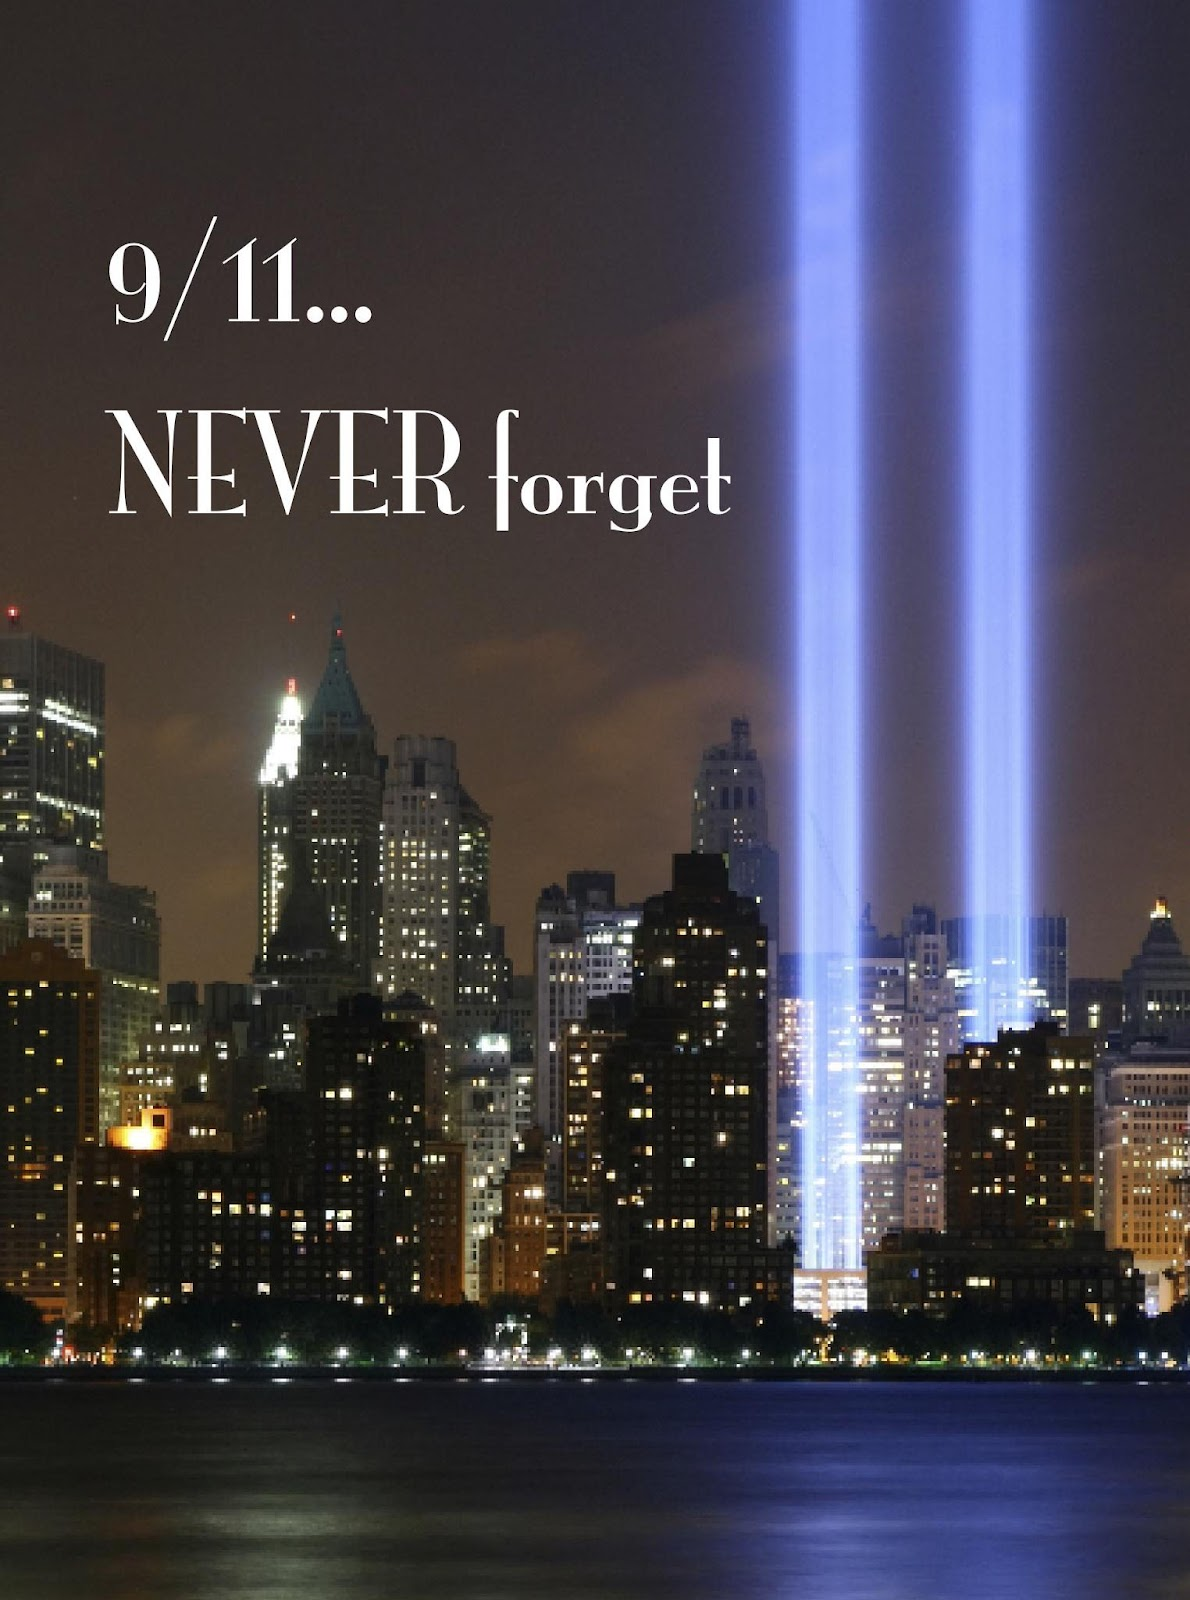 9/11 ANNIVERSARY: WE SHALL NEVER FORGET